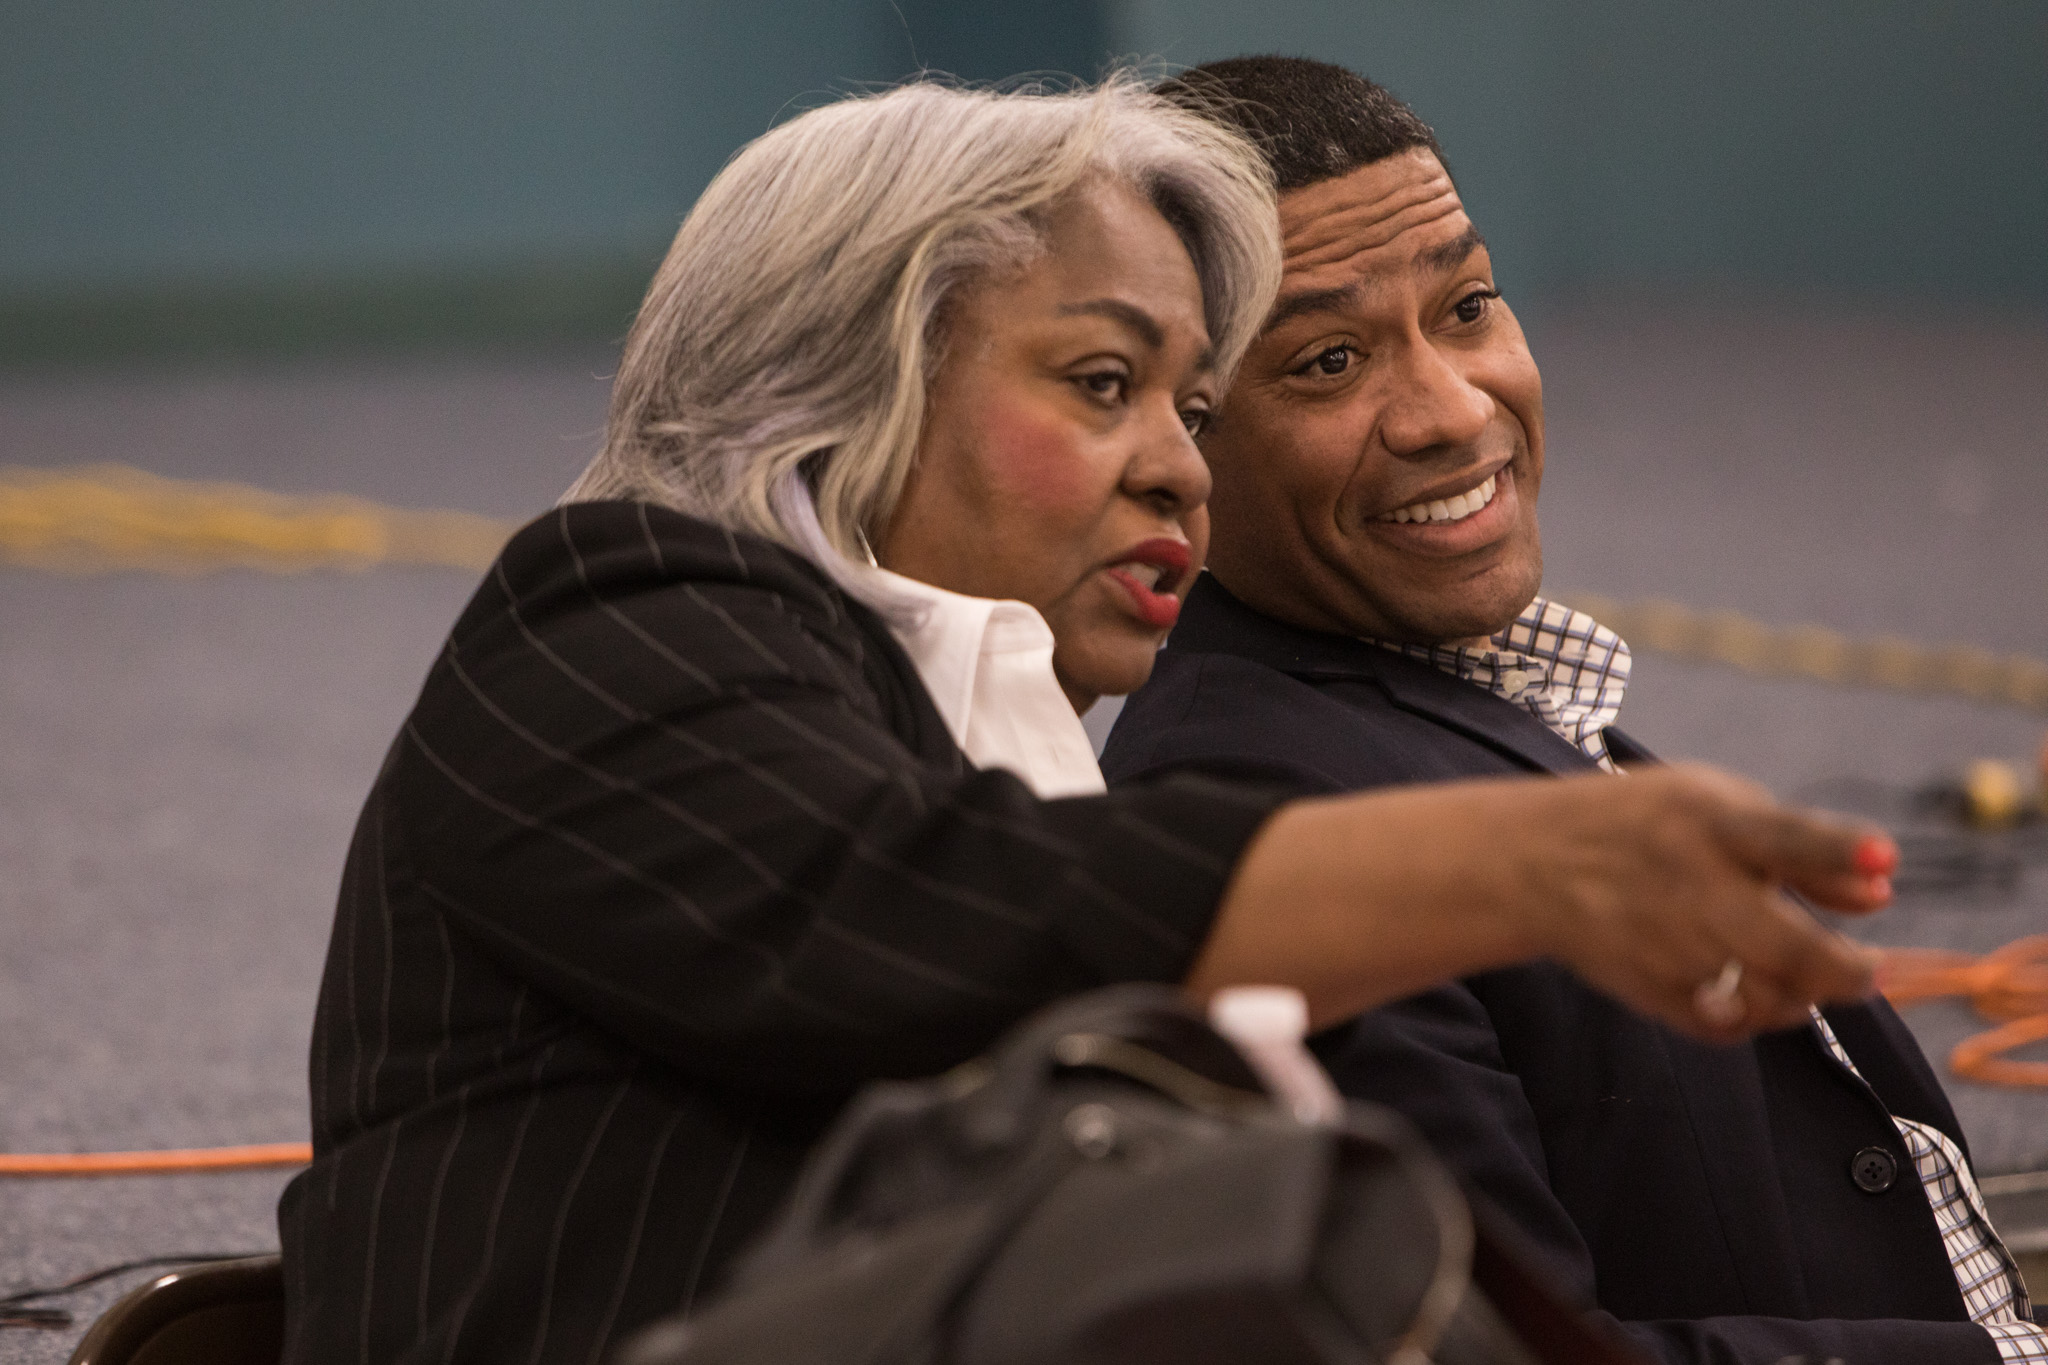 (From left) Rep. Barbara Gervin-Hawkins (D) and Councilman William 'Cruz' Shaw (D2) whisper to one another during a town hall meeting with the Government Hill Alliance Neighborhood Association at St. Patrick Catholic Church.